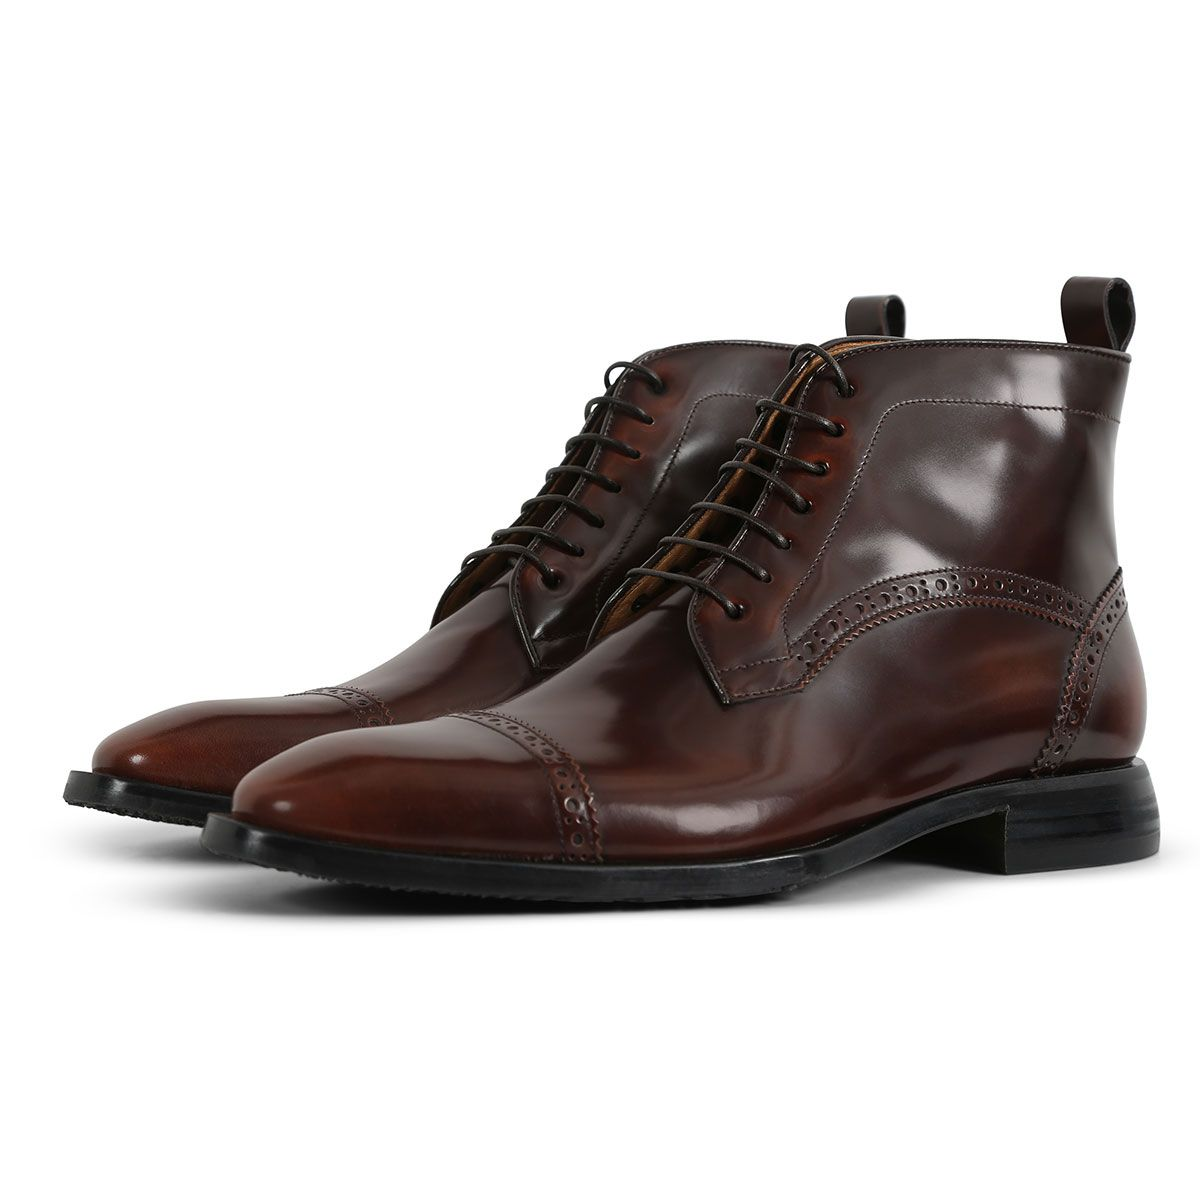 Oliver Sweeney Gradella Dark Brown - Antiqued High-Shine Leather Boot